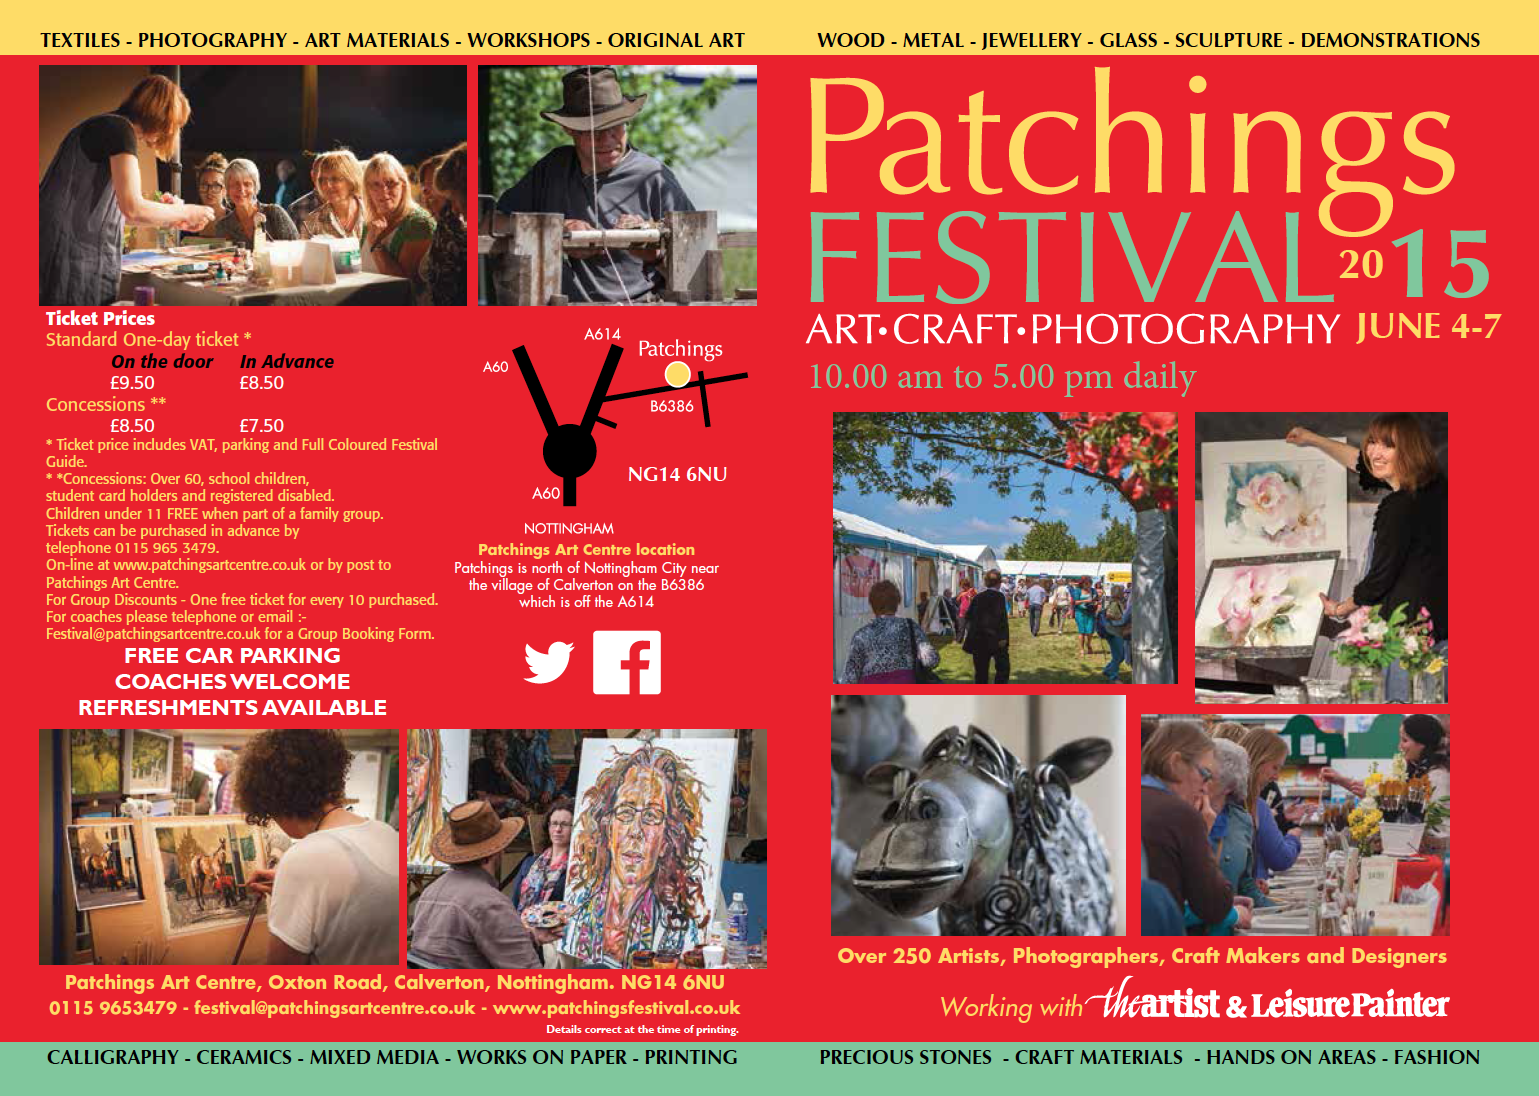 Patchings Festival 2015 leaflet